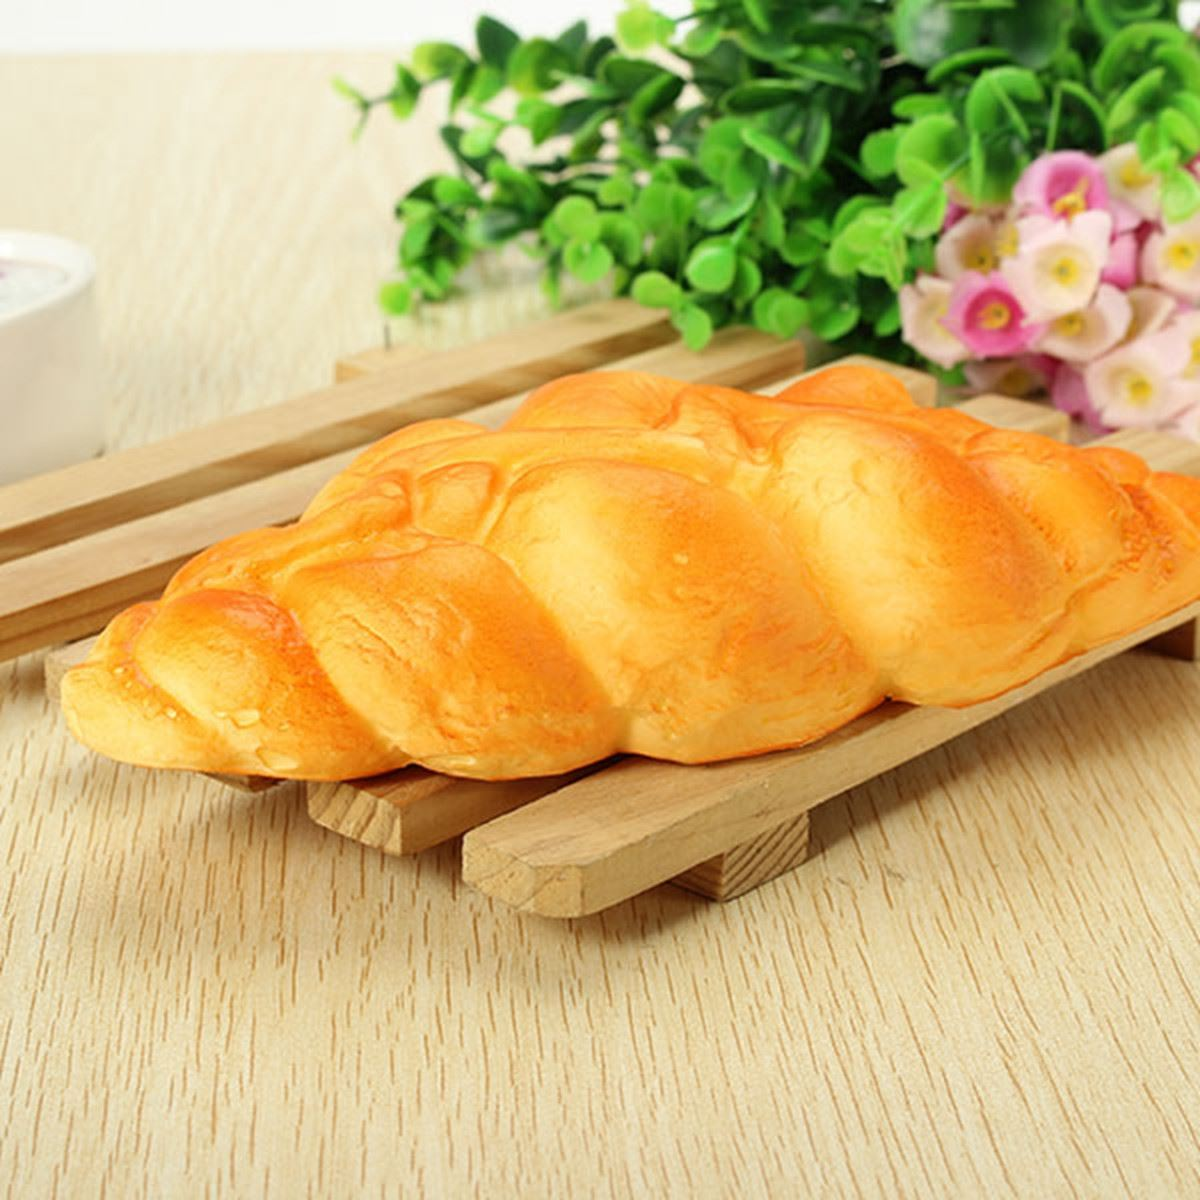 Kawaii Squishying Simulation Bread Fun Toys Soft Decoration Novelty Slow Rising Toys Gift For Children Adult